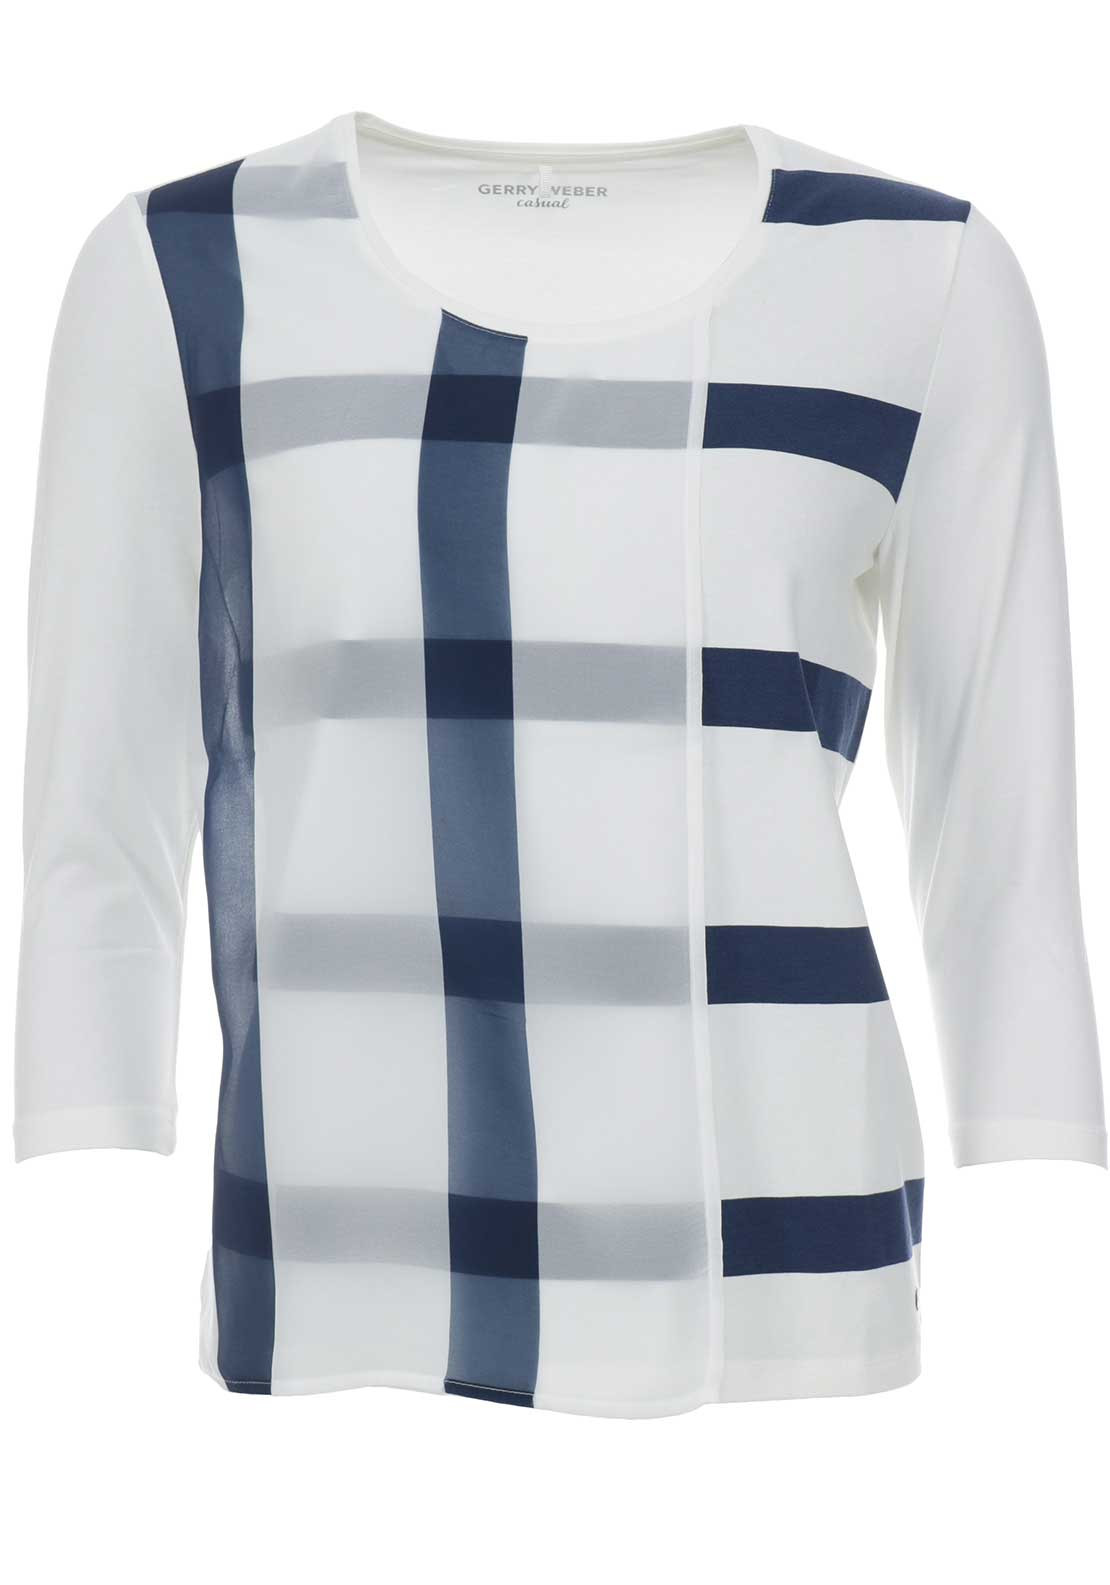 Gerry Weber Chiffon Overlay Top, White & Navy